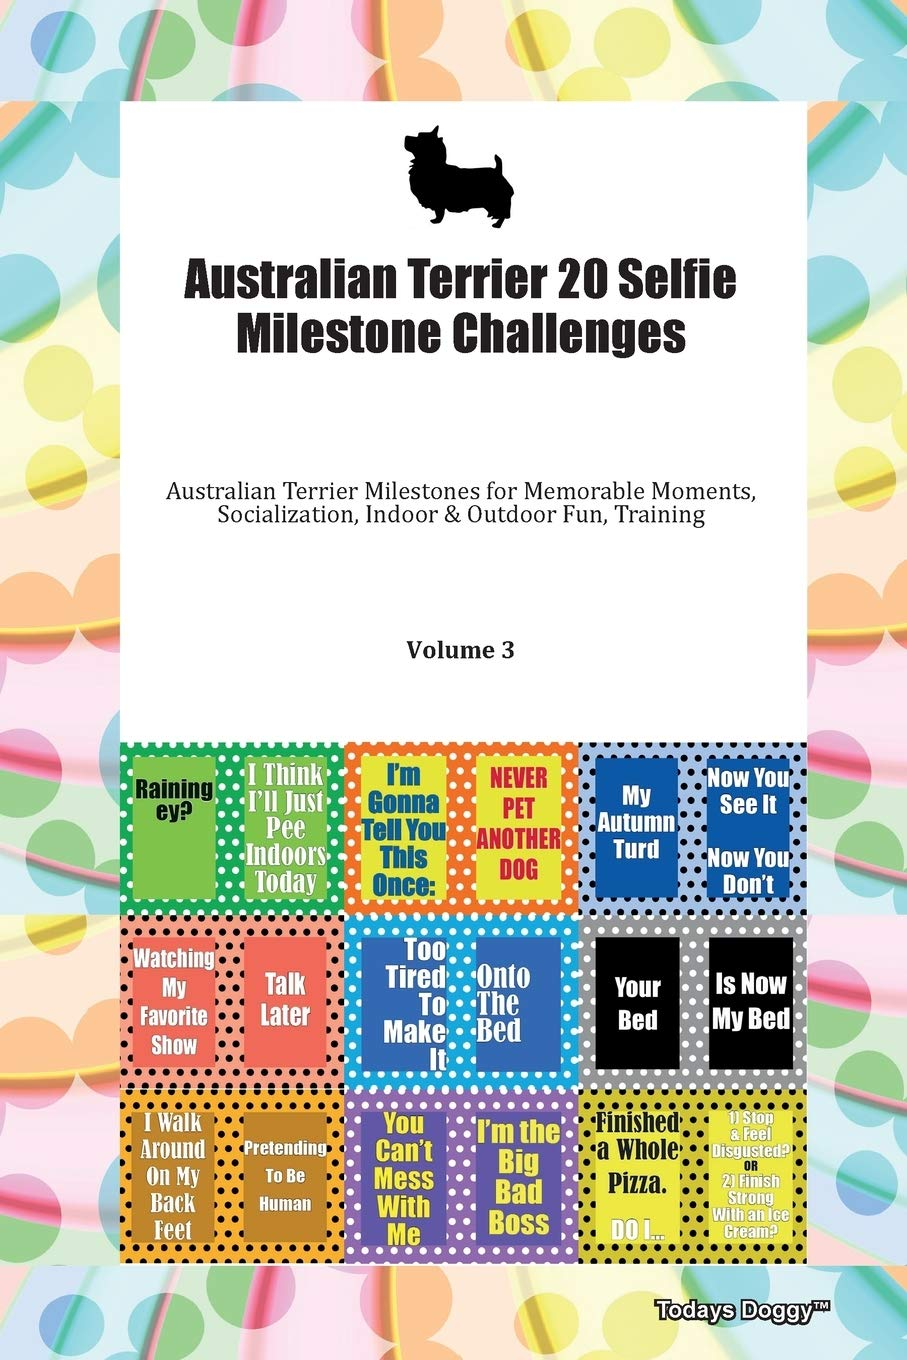 Australian Terrier 20 Selfie Milestone Challenges Australian Terrier Milestones for Memorable Moments, Socialization, Indoor & Outdoor Fun, Training Volume 3